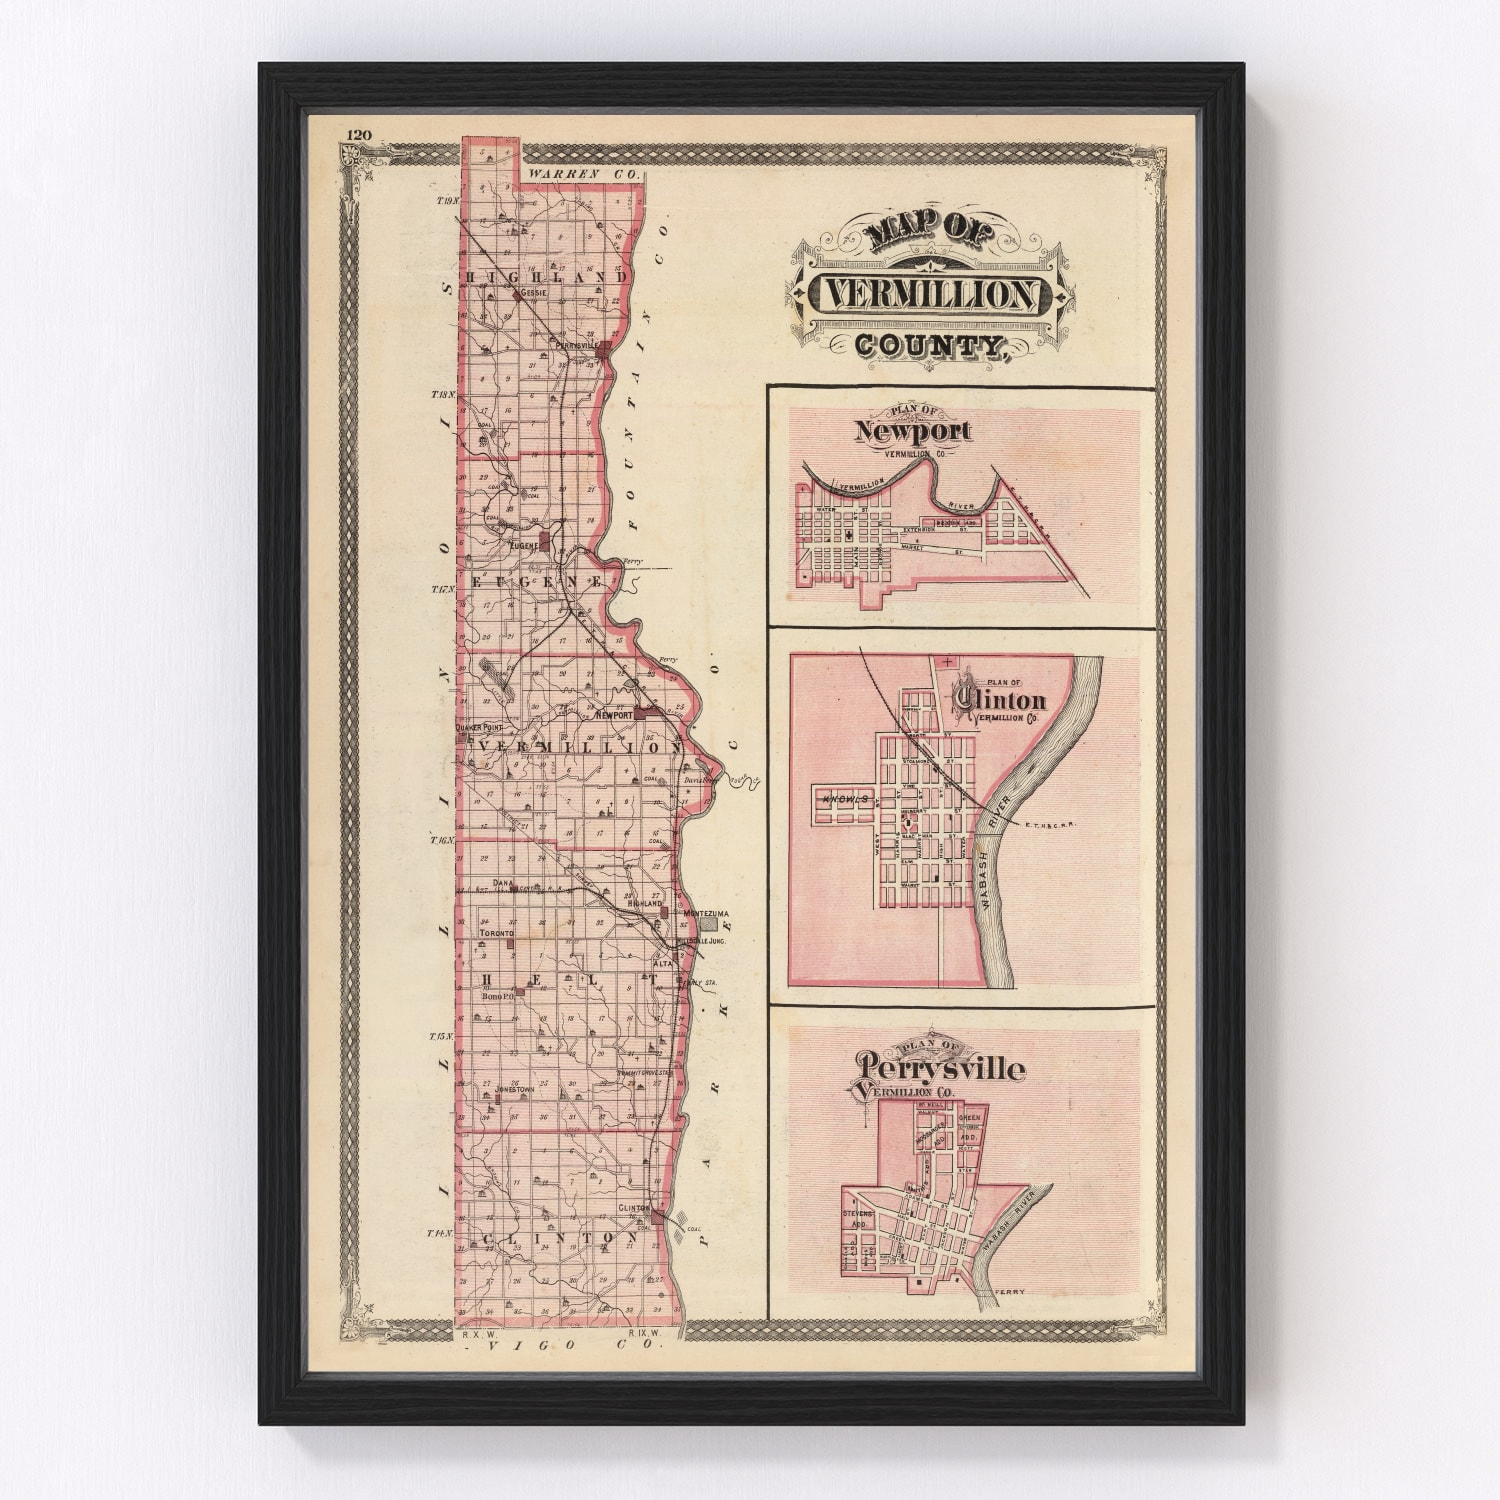 Vintage Map of Vermillion County Indiana, 1876